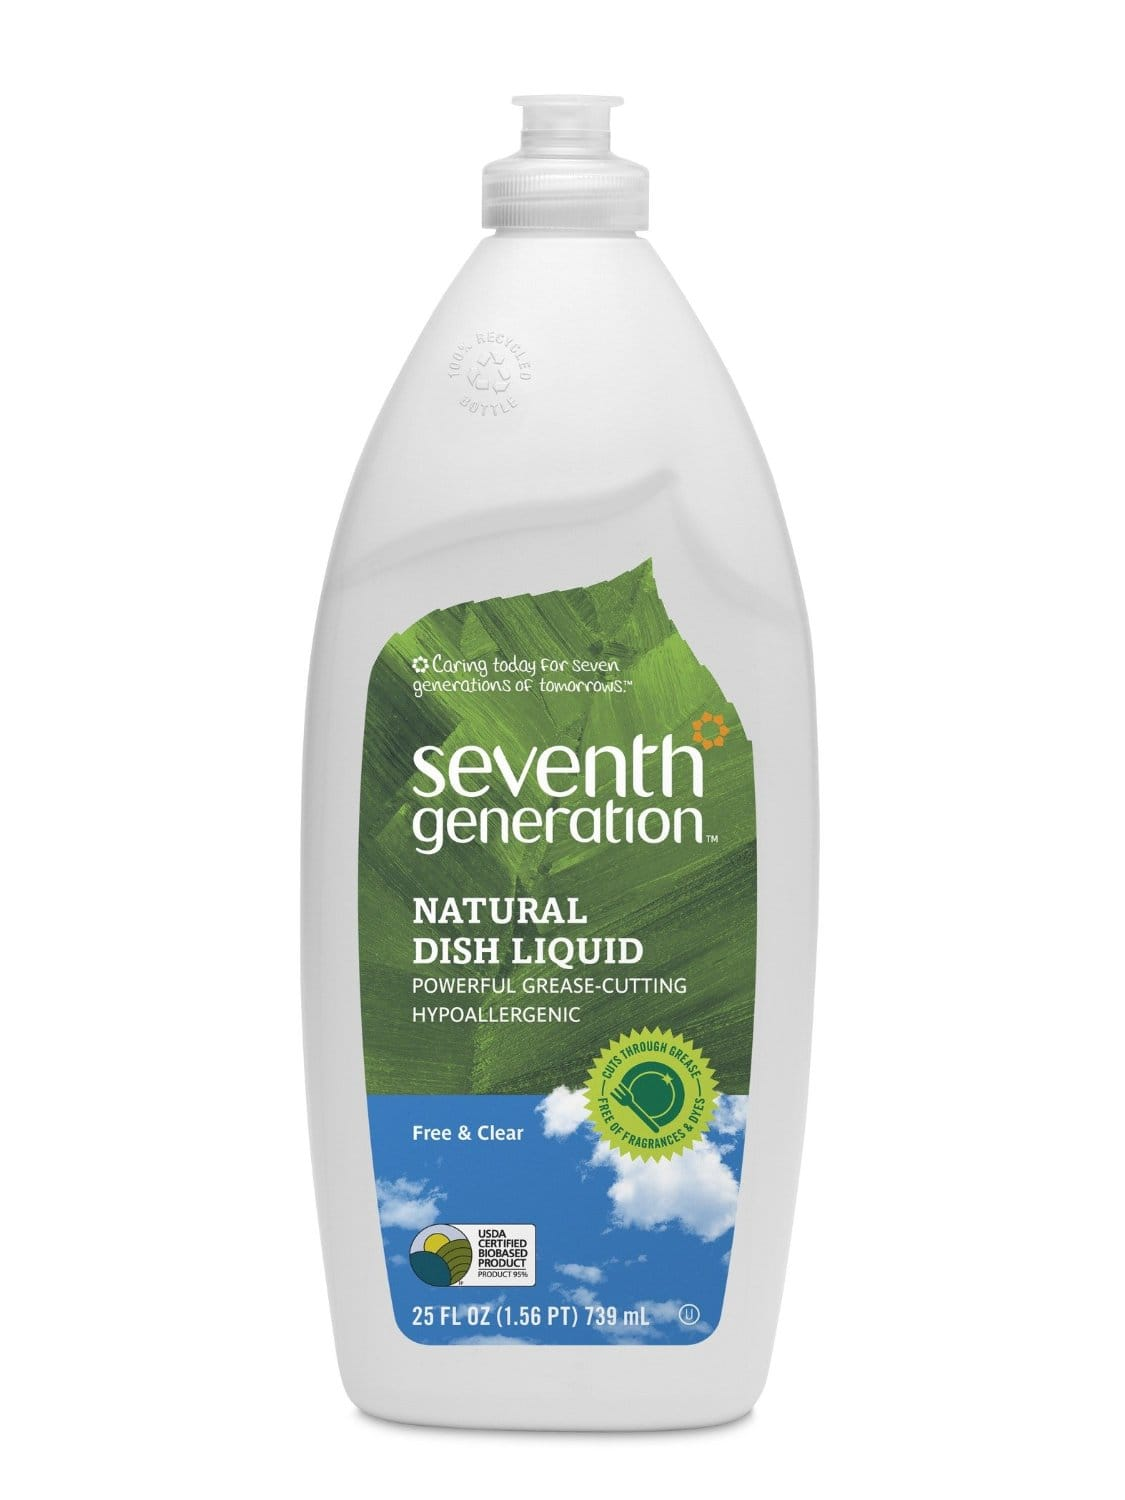 6-Pack of 25oz Seventh Generation Natural Dish Liquid (Free & Clear)  $11.70 + Free Shipping